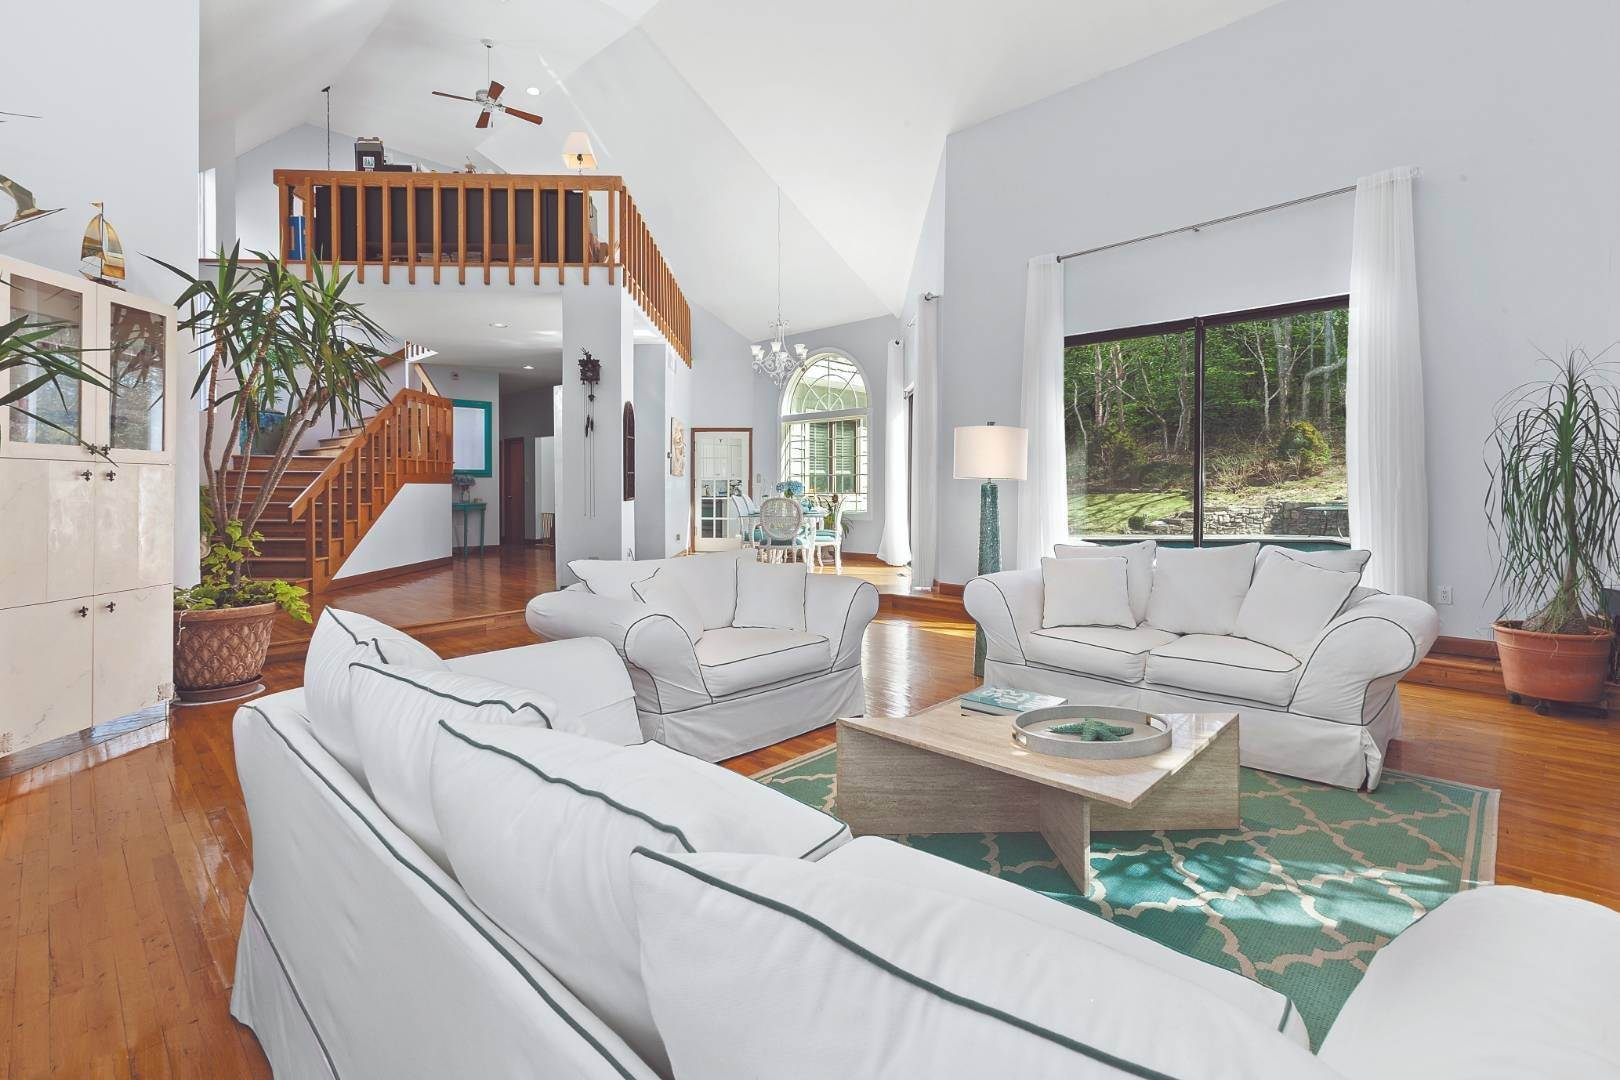 Single Family Home for Sale at Sag Harbor, NY 11963